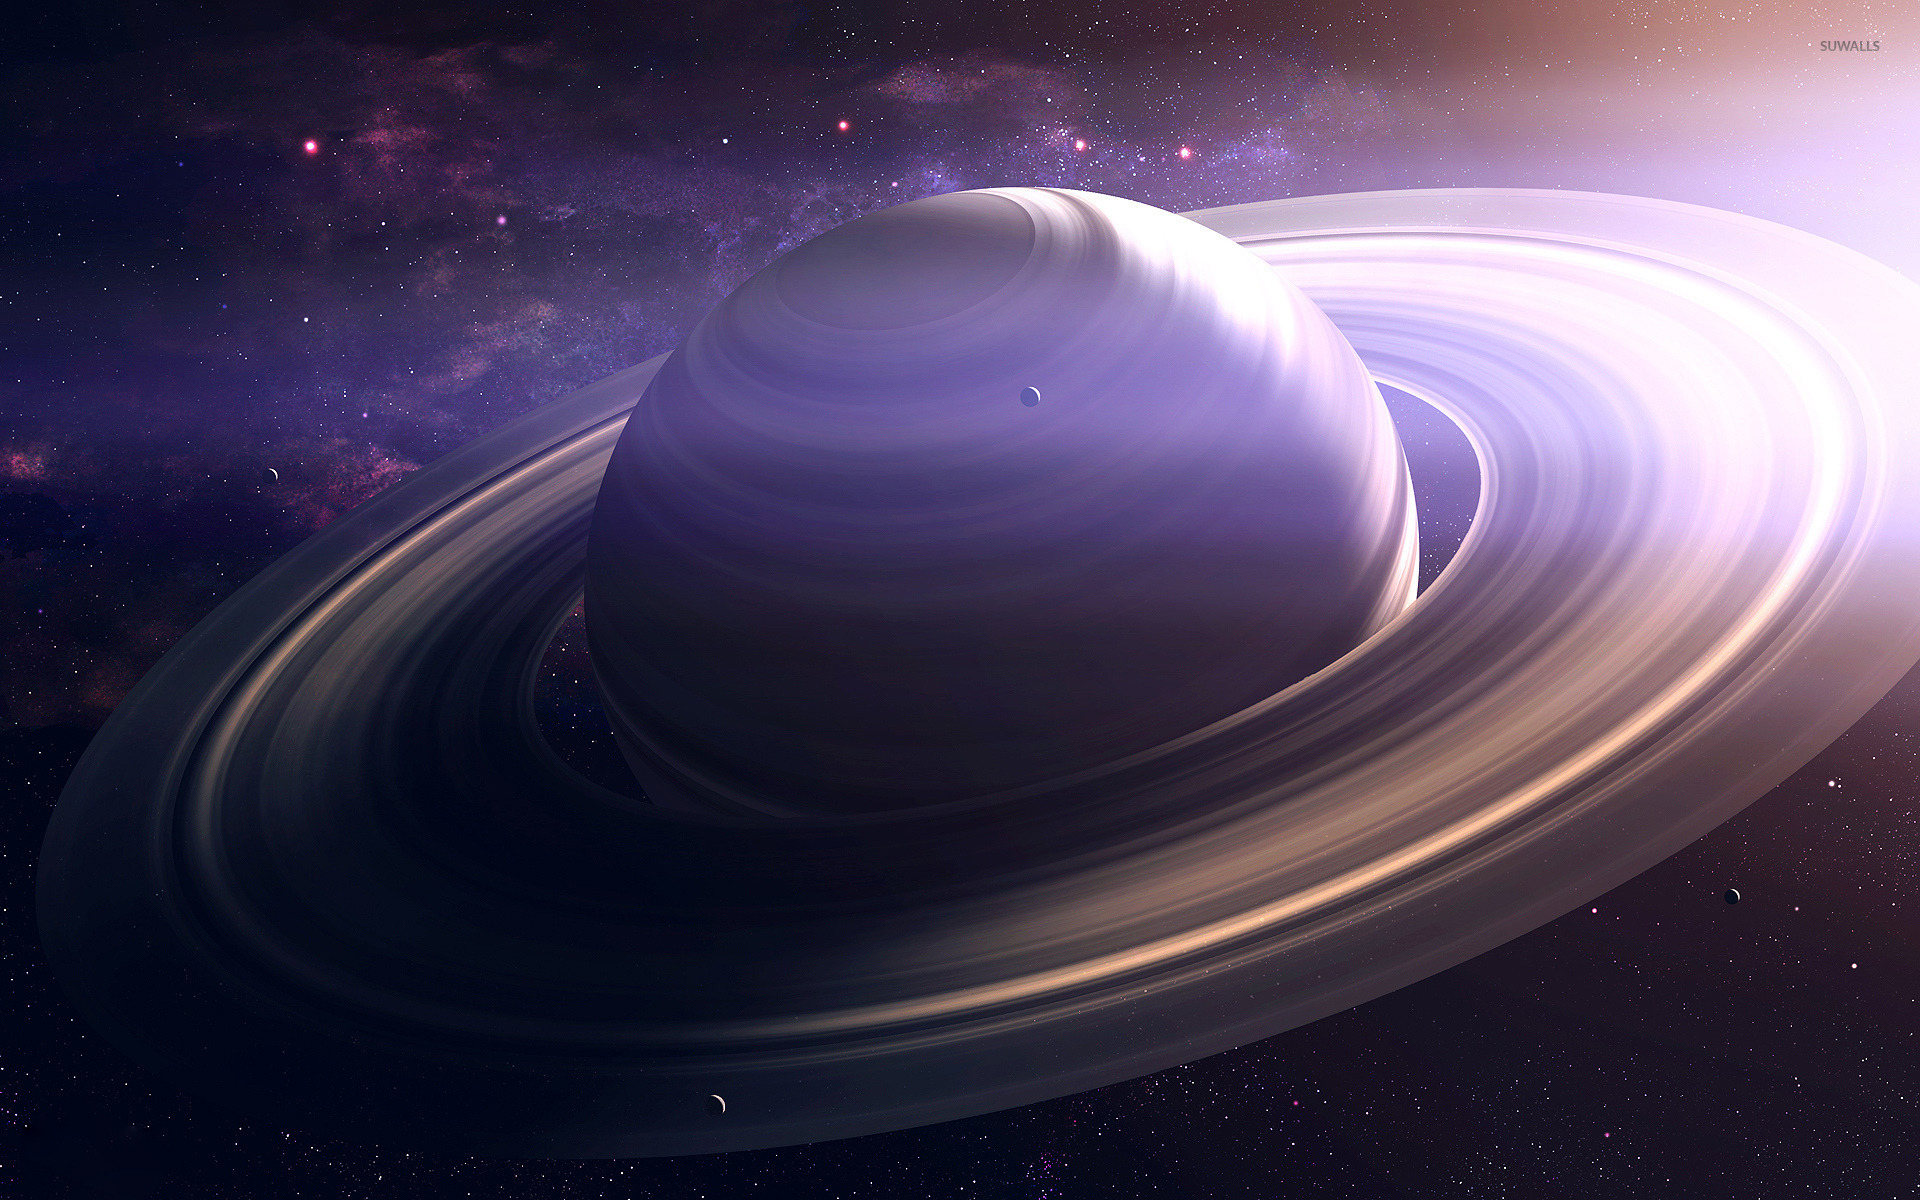 planet with rings wallpaper space wallpapers 45490